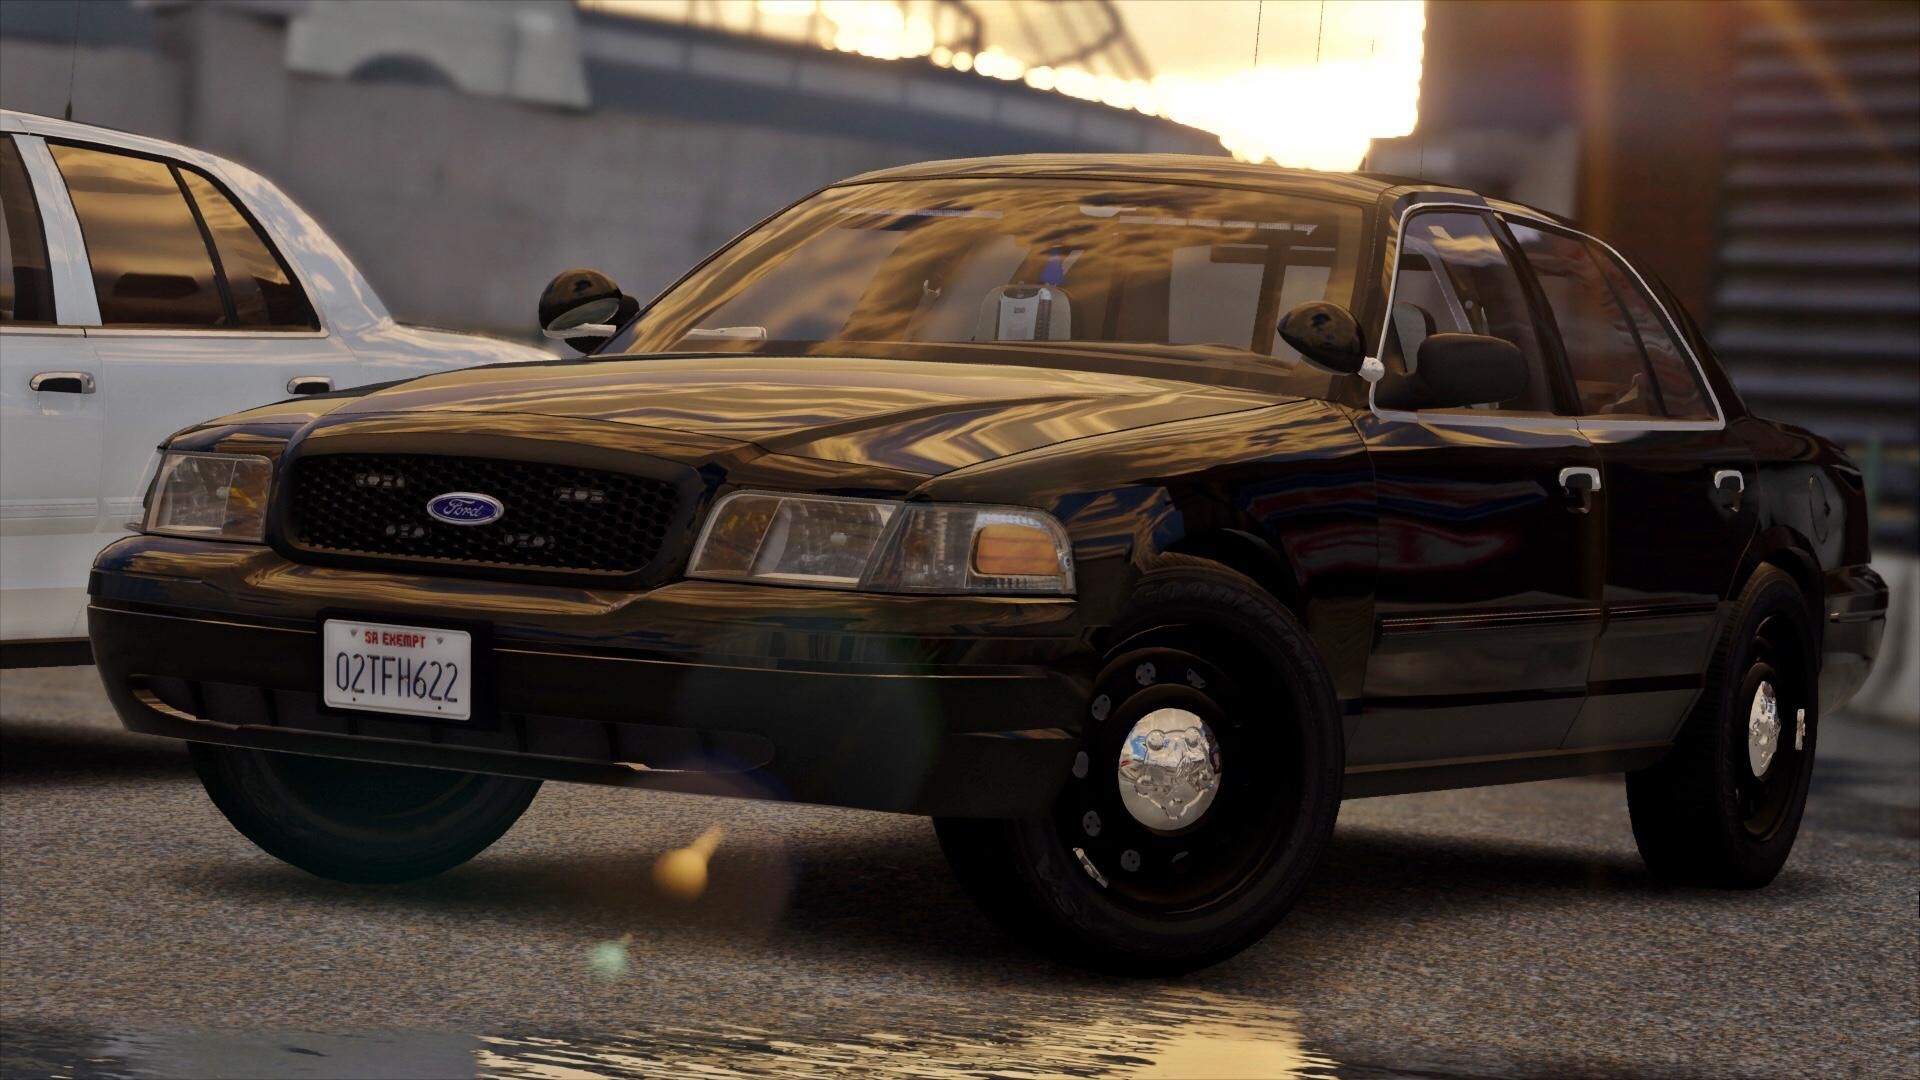 2010 unmarked crown victoria police interceptor  els